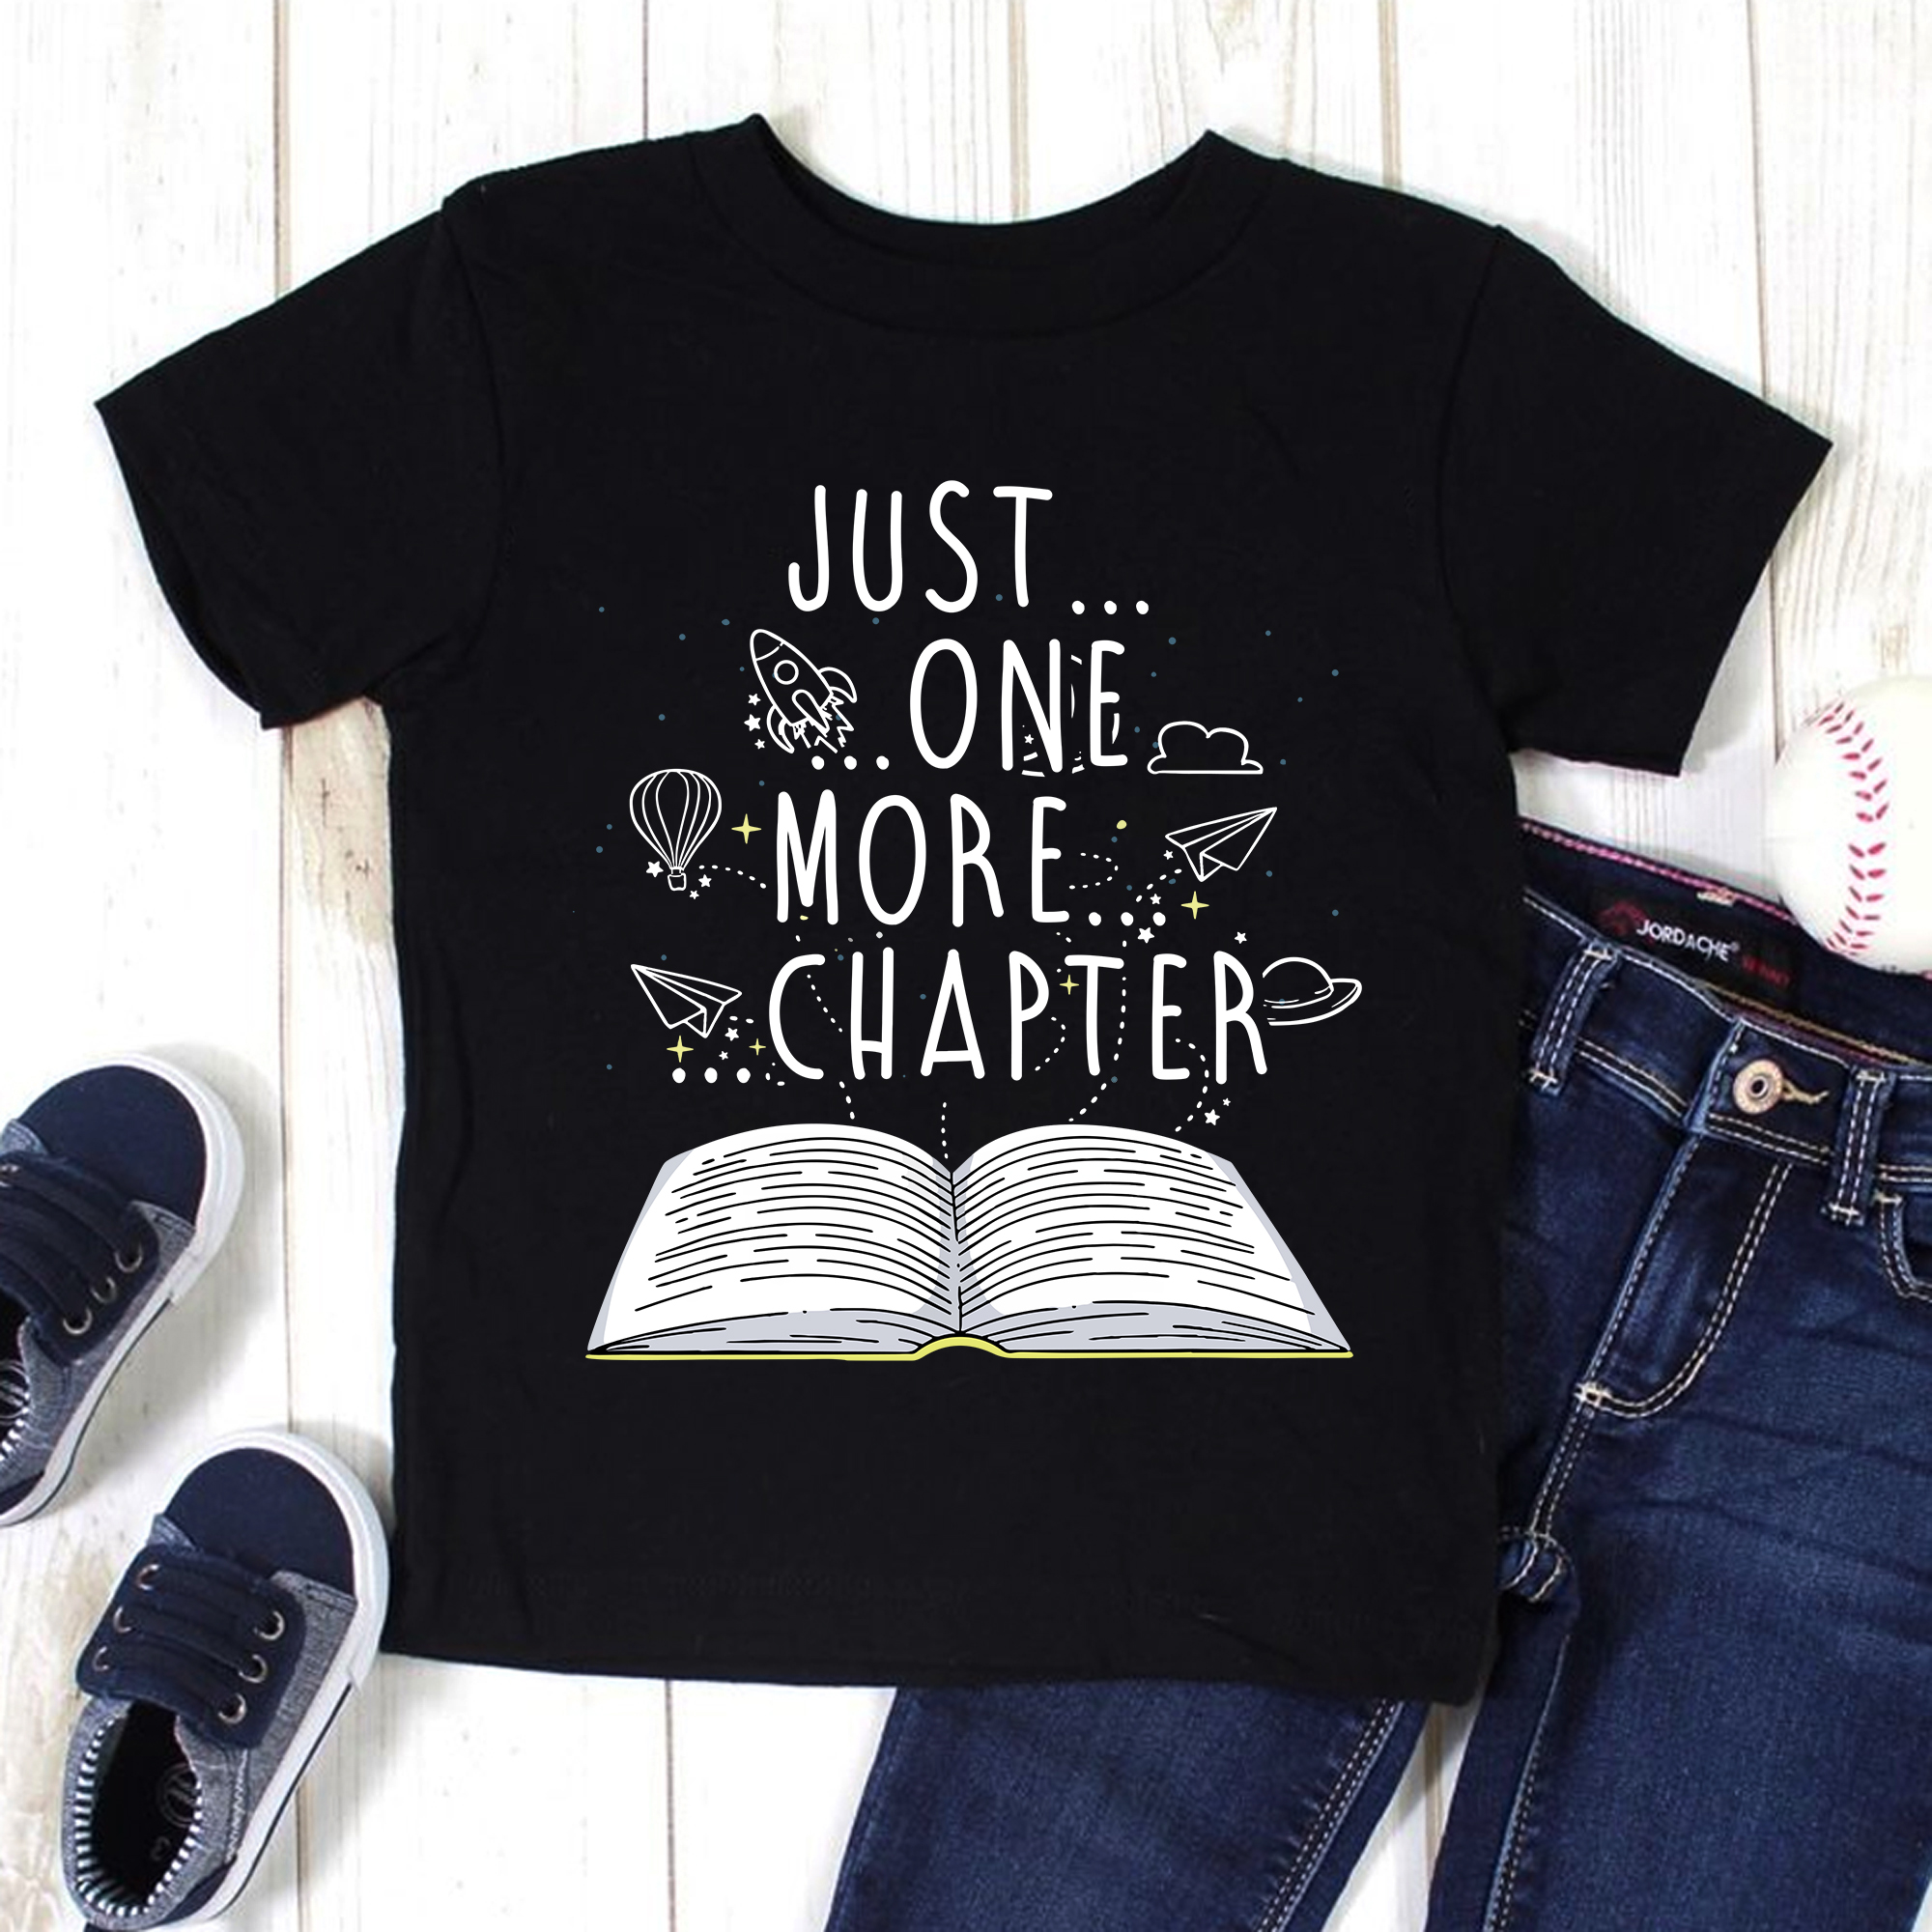 Book Shirt Just One More Chapter